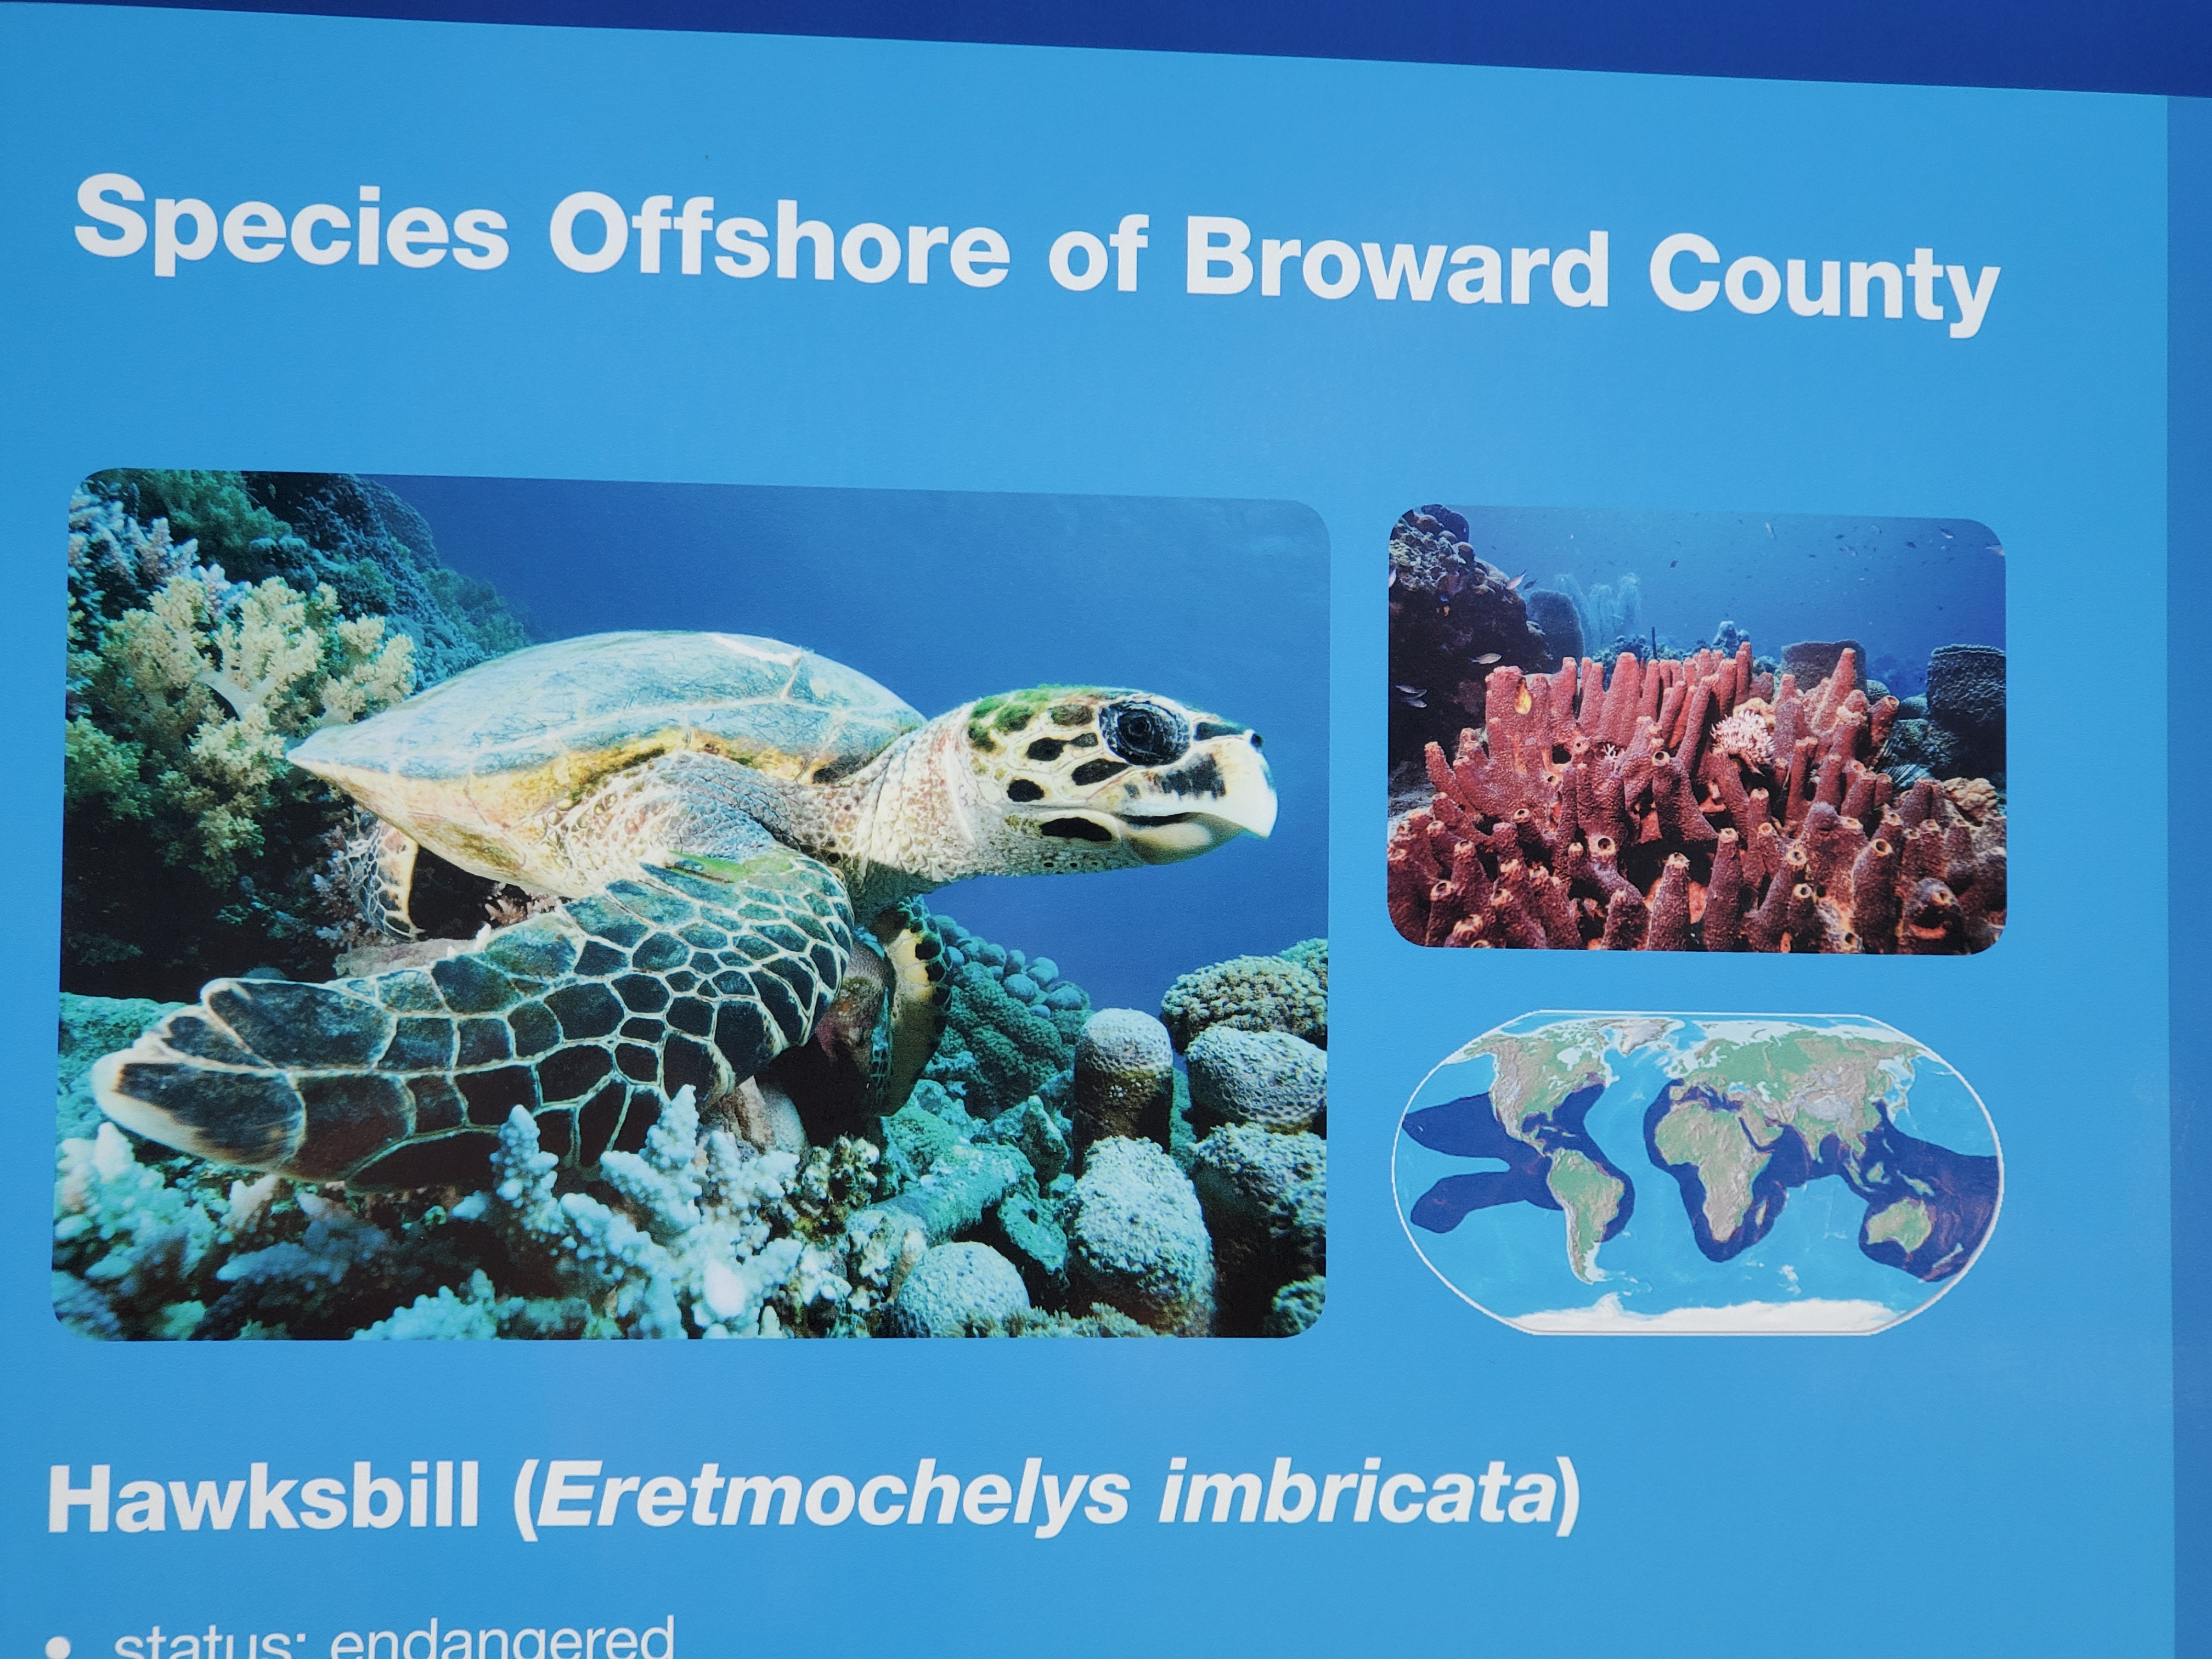 Ispecies of sea turtles in Broward County Florida